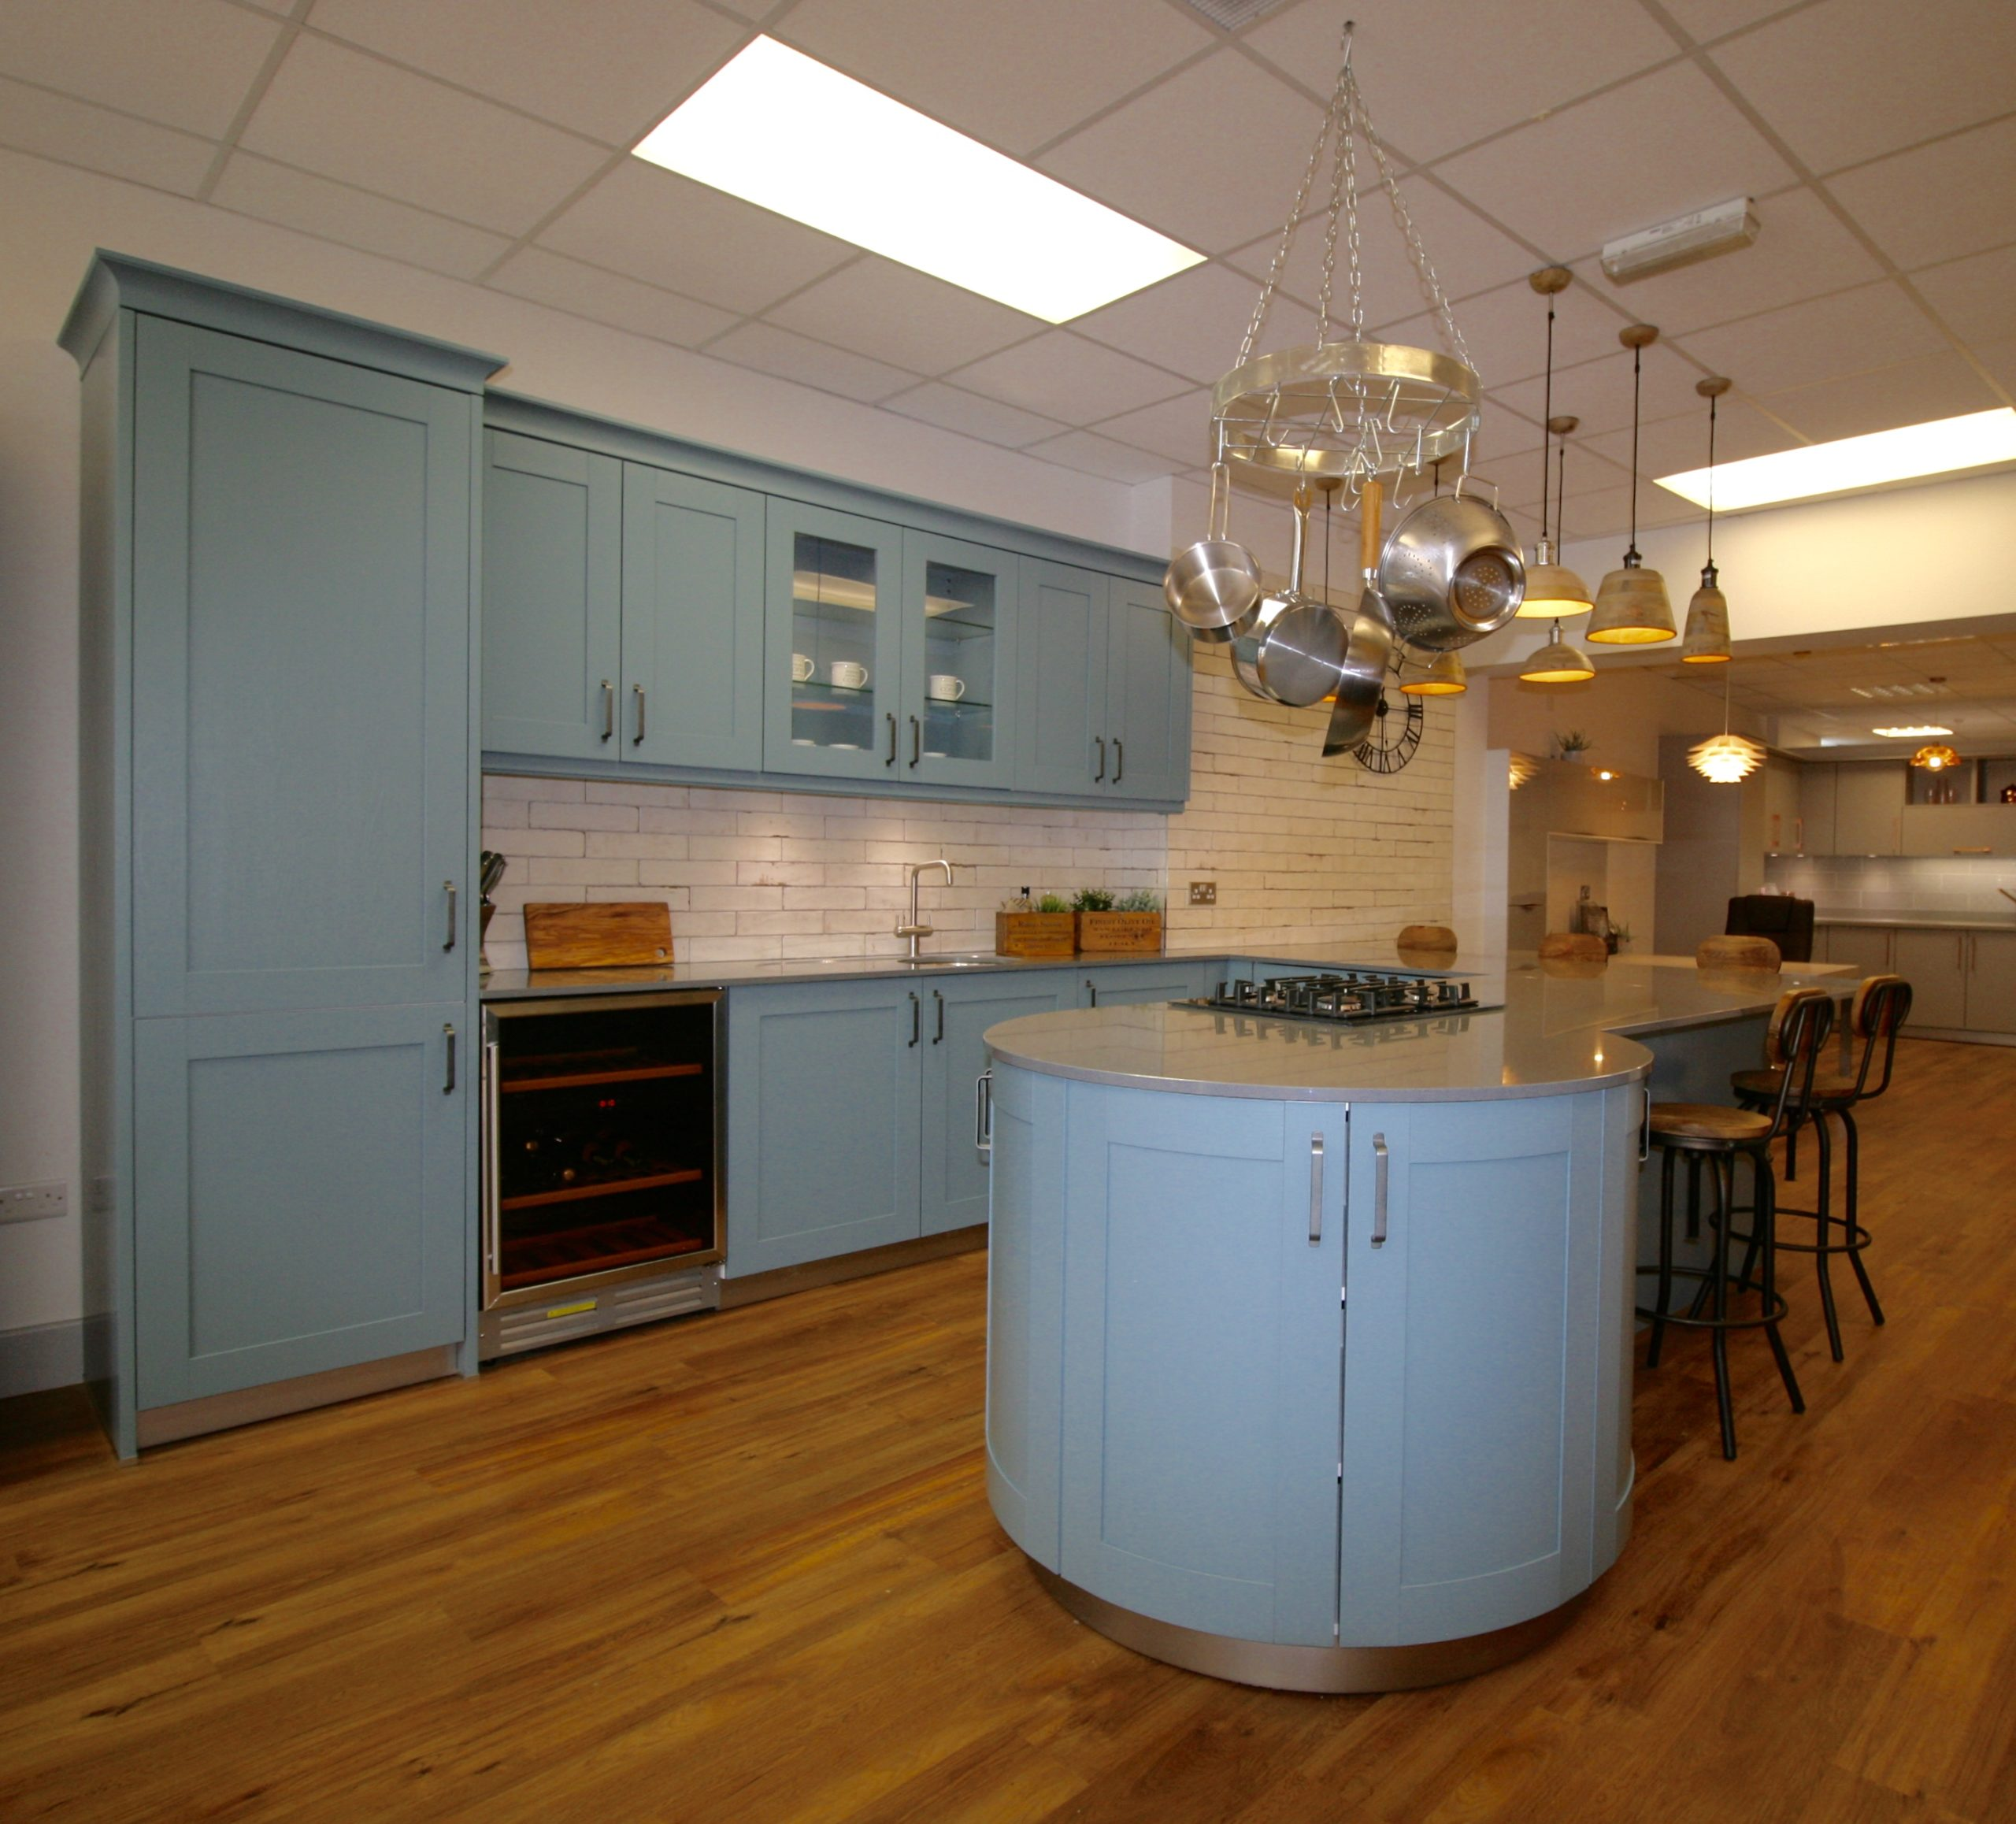 Schuller Casa shaker style kitchen in blue-grey with polished steel effect silestone worktop, and industrial and vintage tiling and accessories